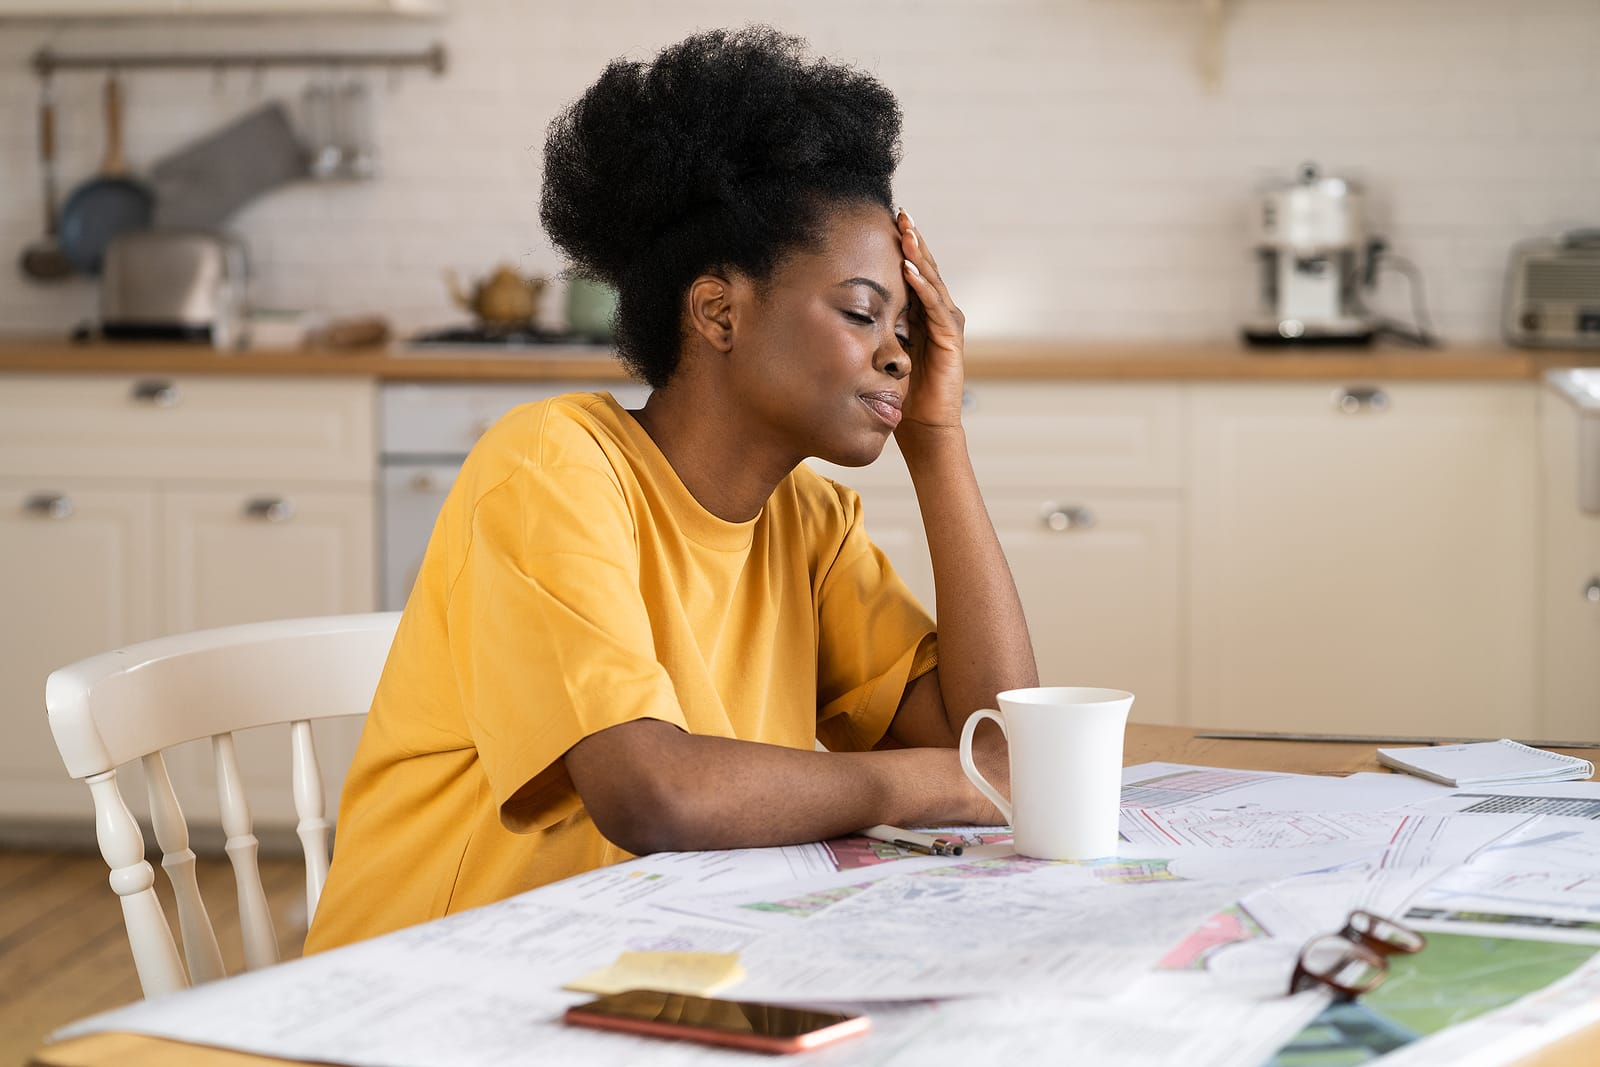 Woman sitting at kitchen table with coffee. Hand on head and stressed